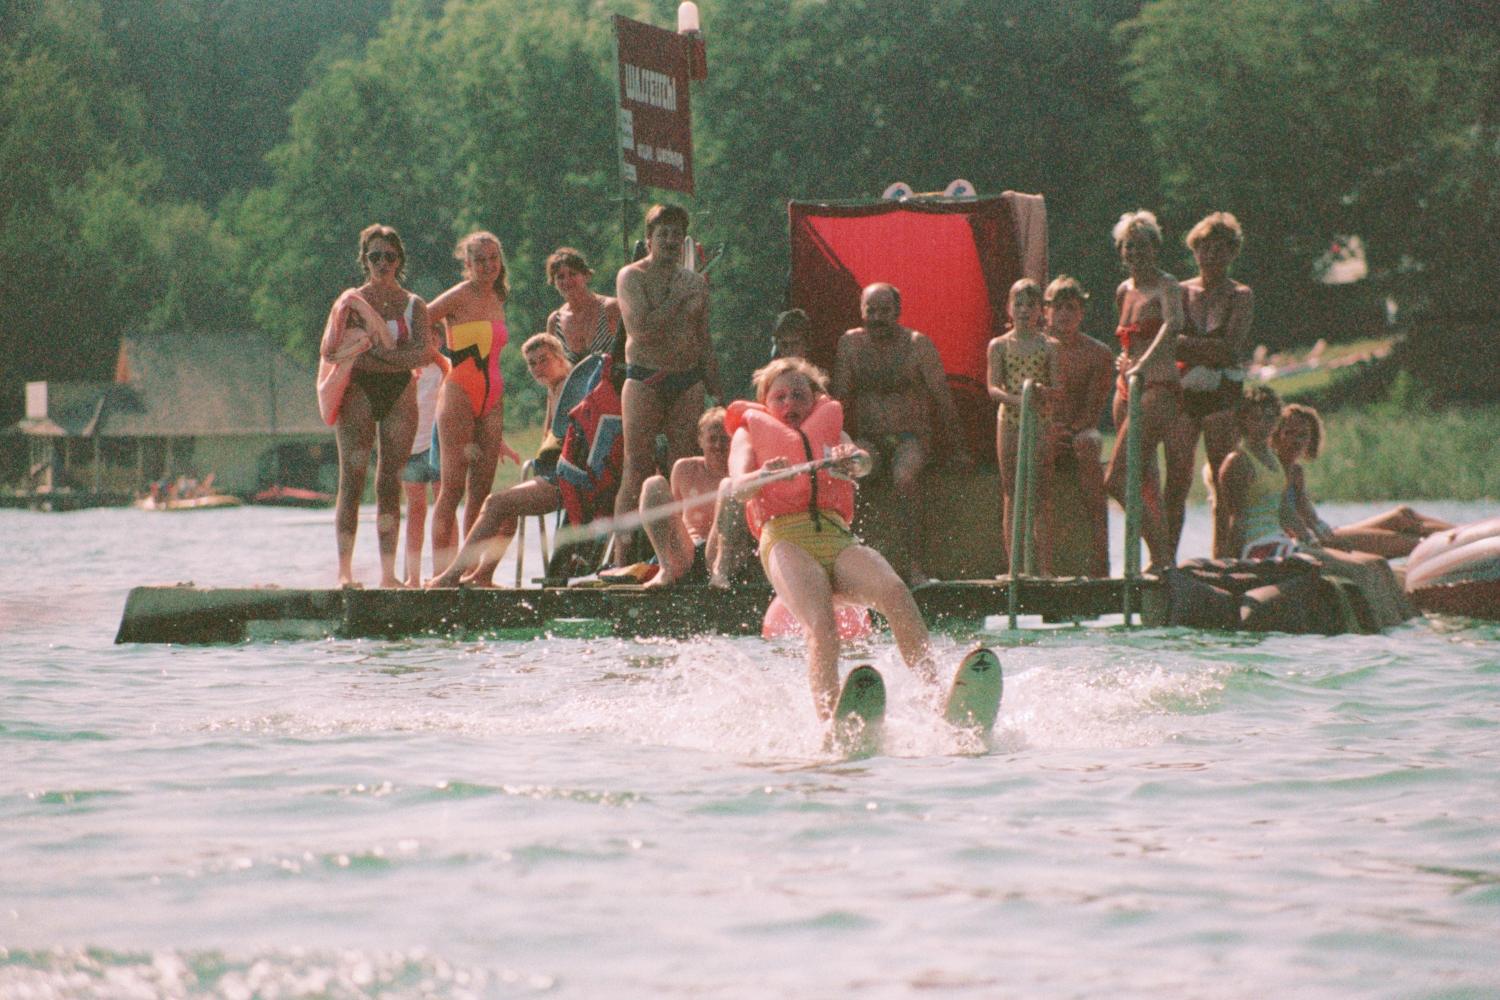 Amy Shearer waterskiing on Worthersee in Austria